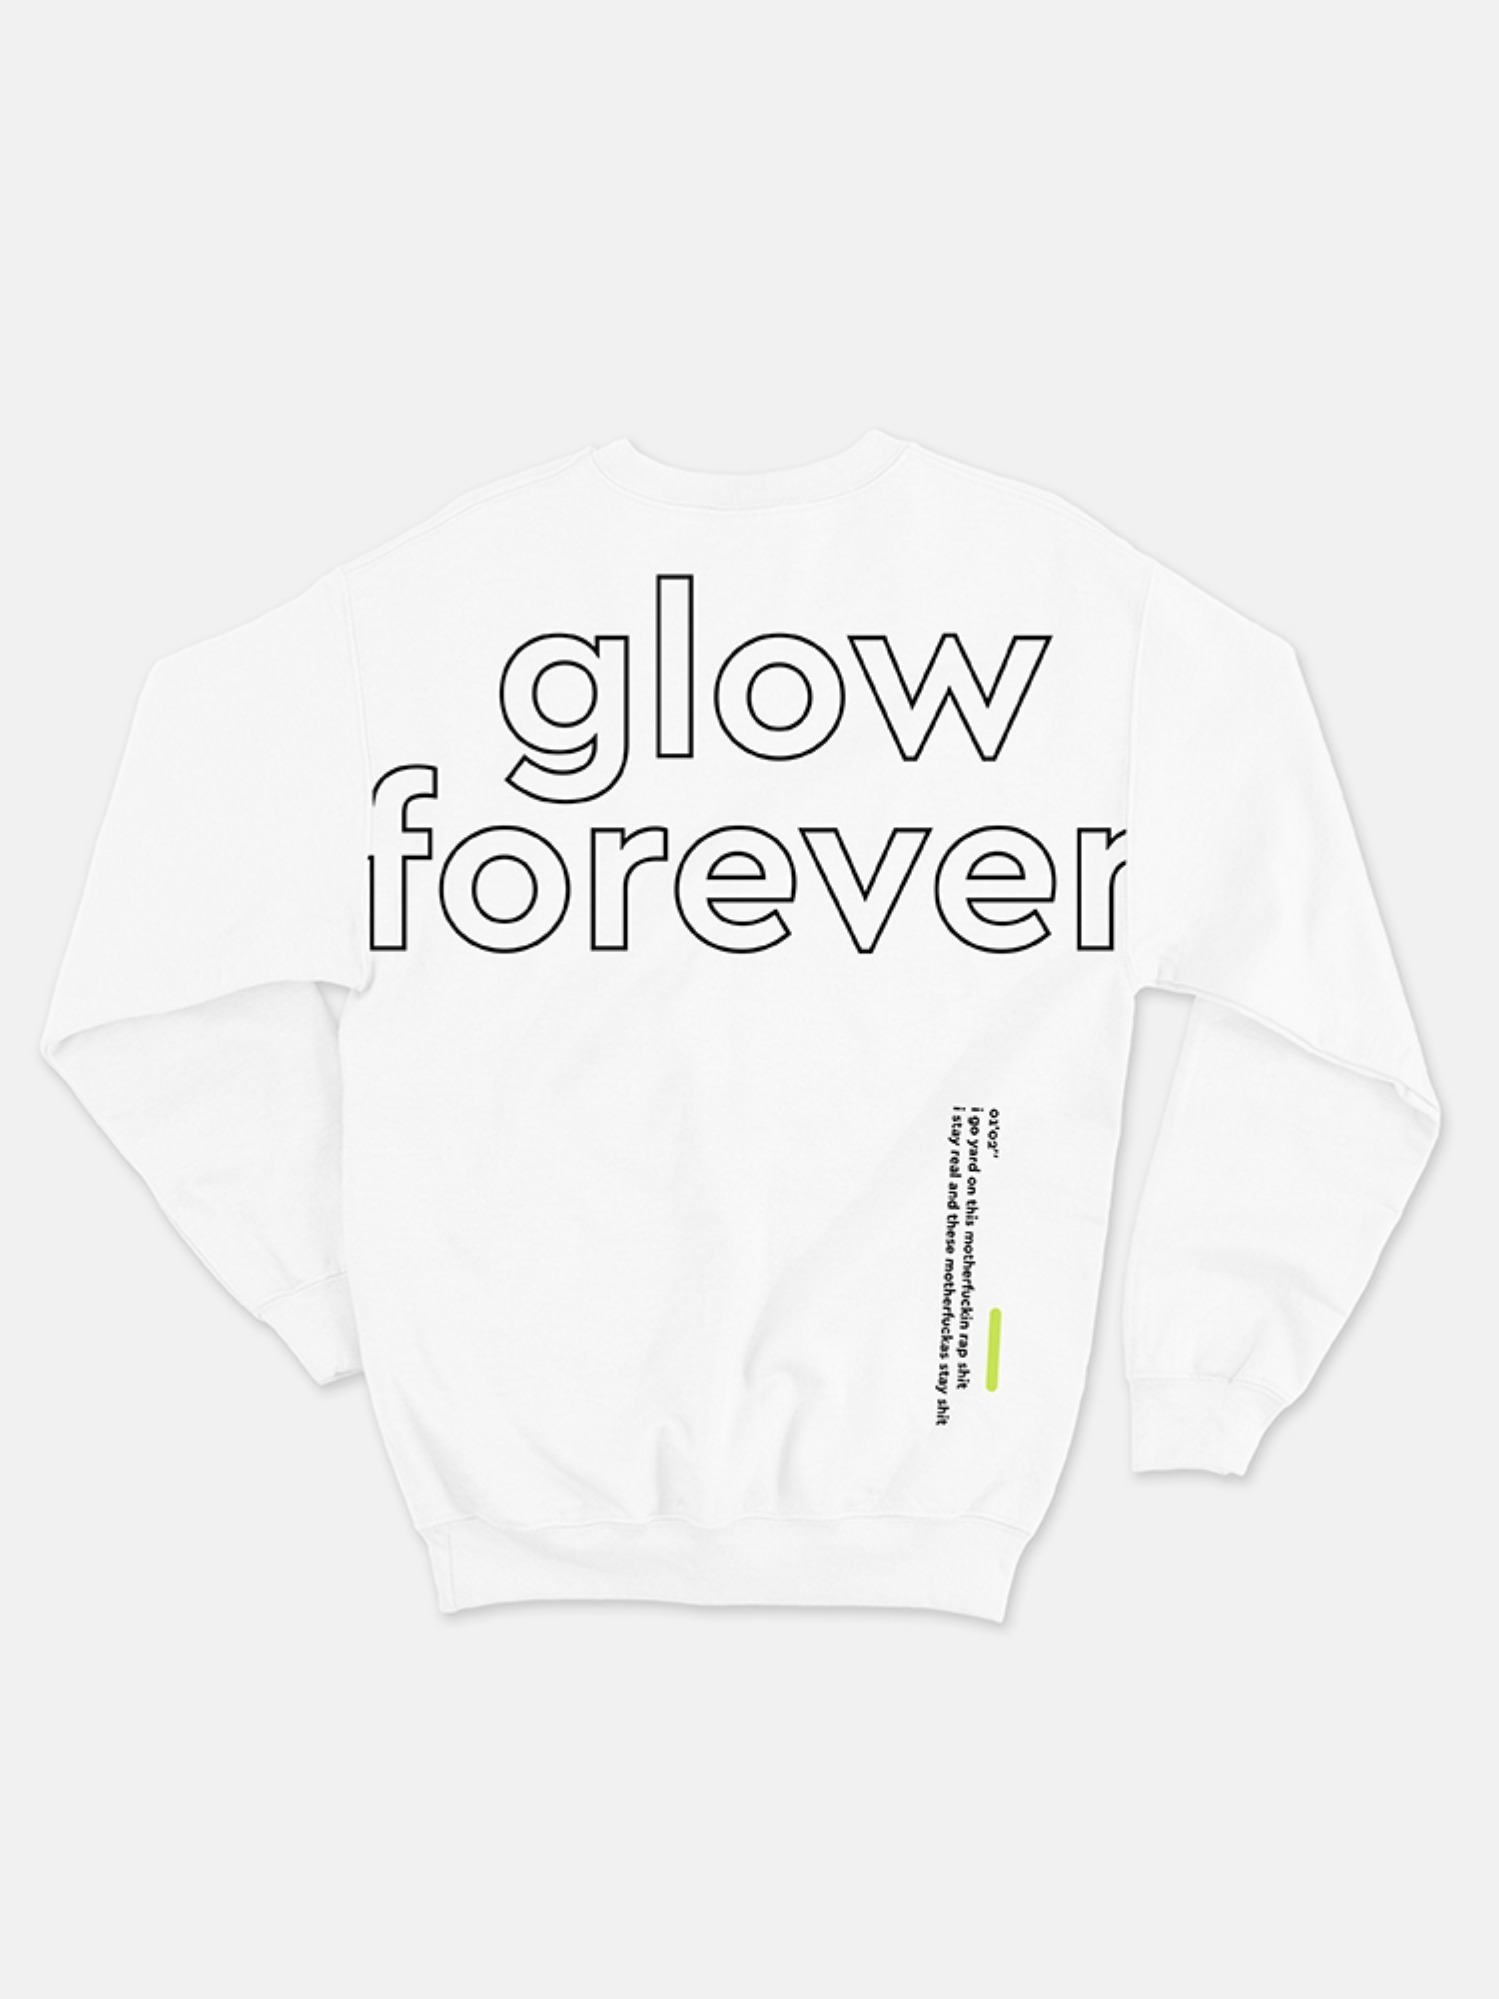 (소량 입고) The Quiett [glow forever] - Crew neck Shirts Off White (3rd pre-oreder)